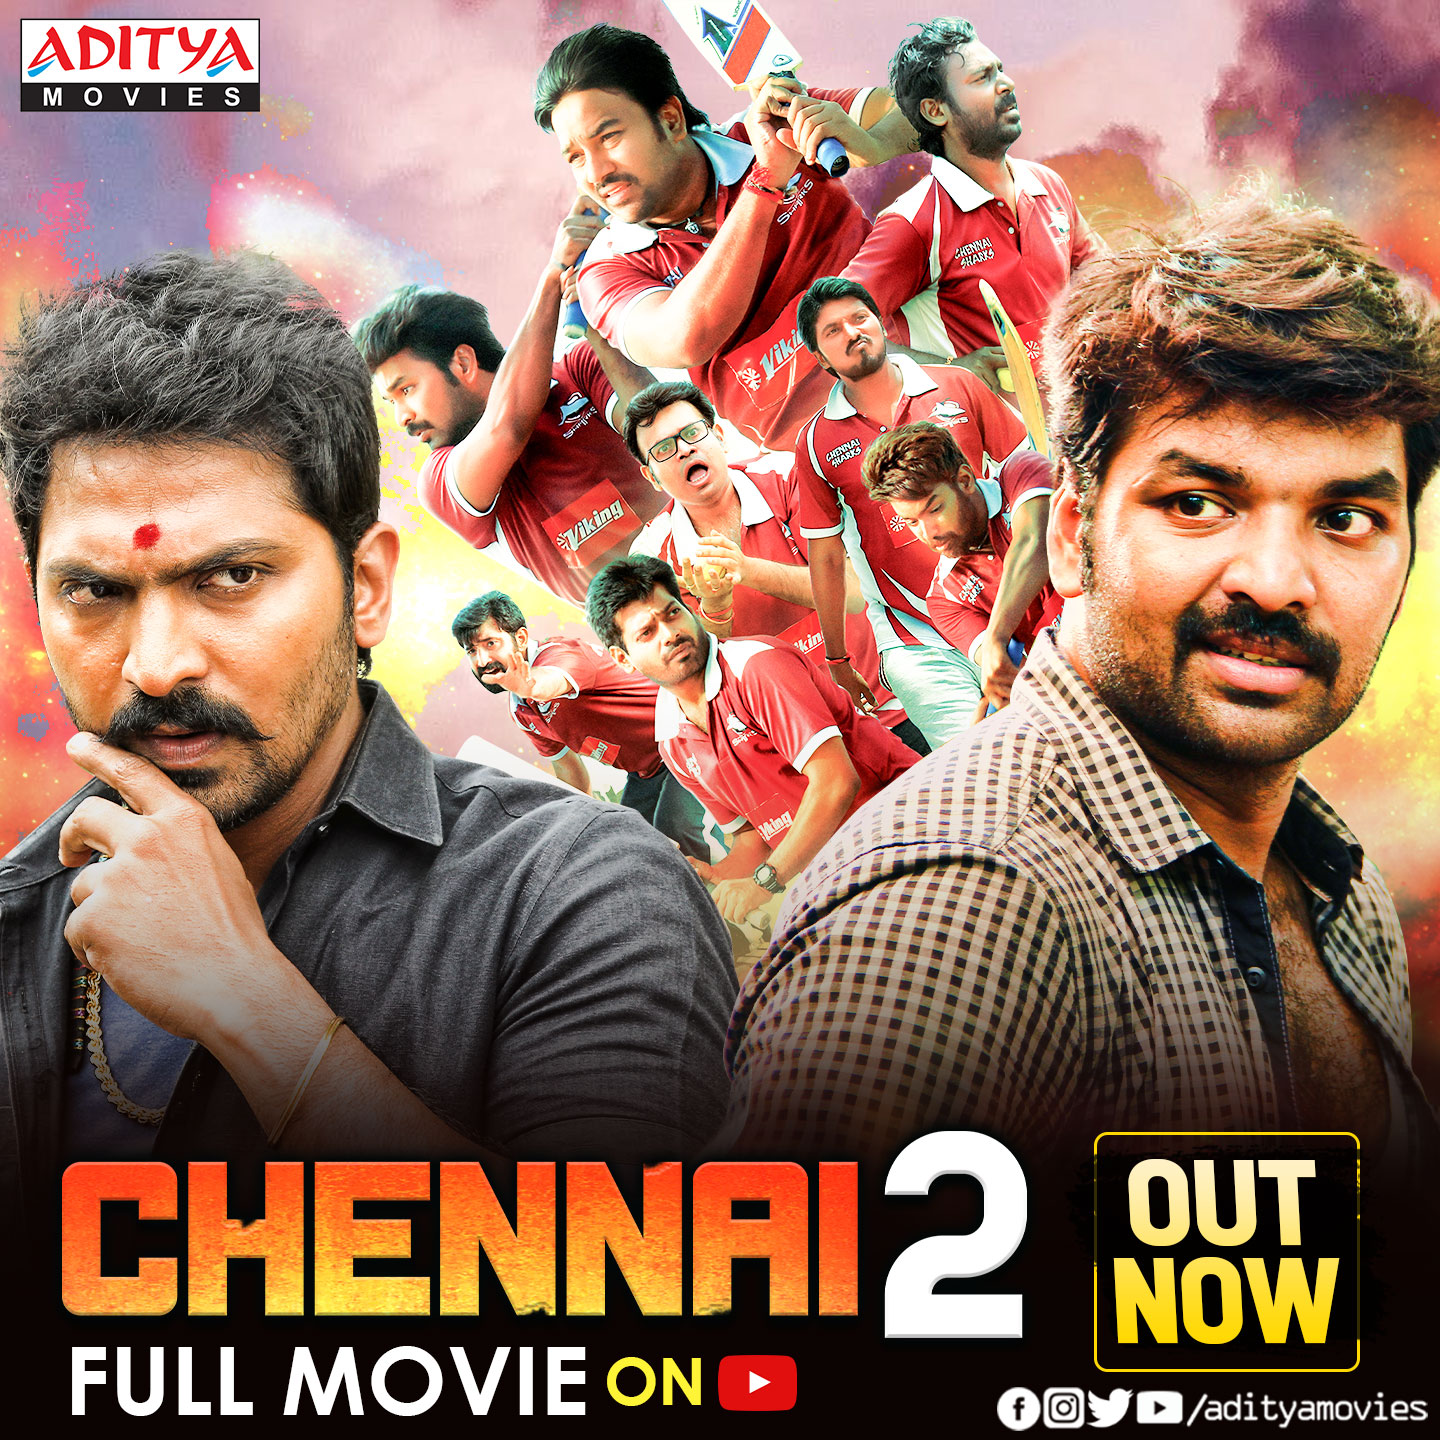 Chennai 2 (Chennai 600028 II) 2021 Hindi Dubbed 1080p HDRip 1910MB Download